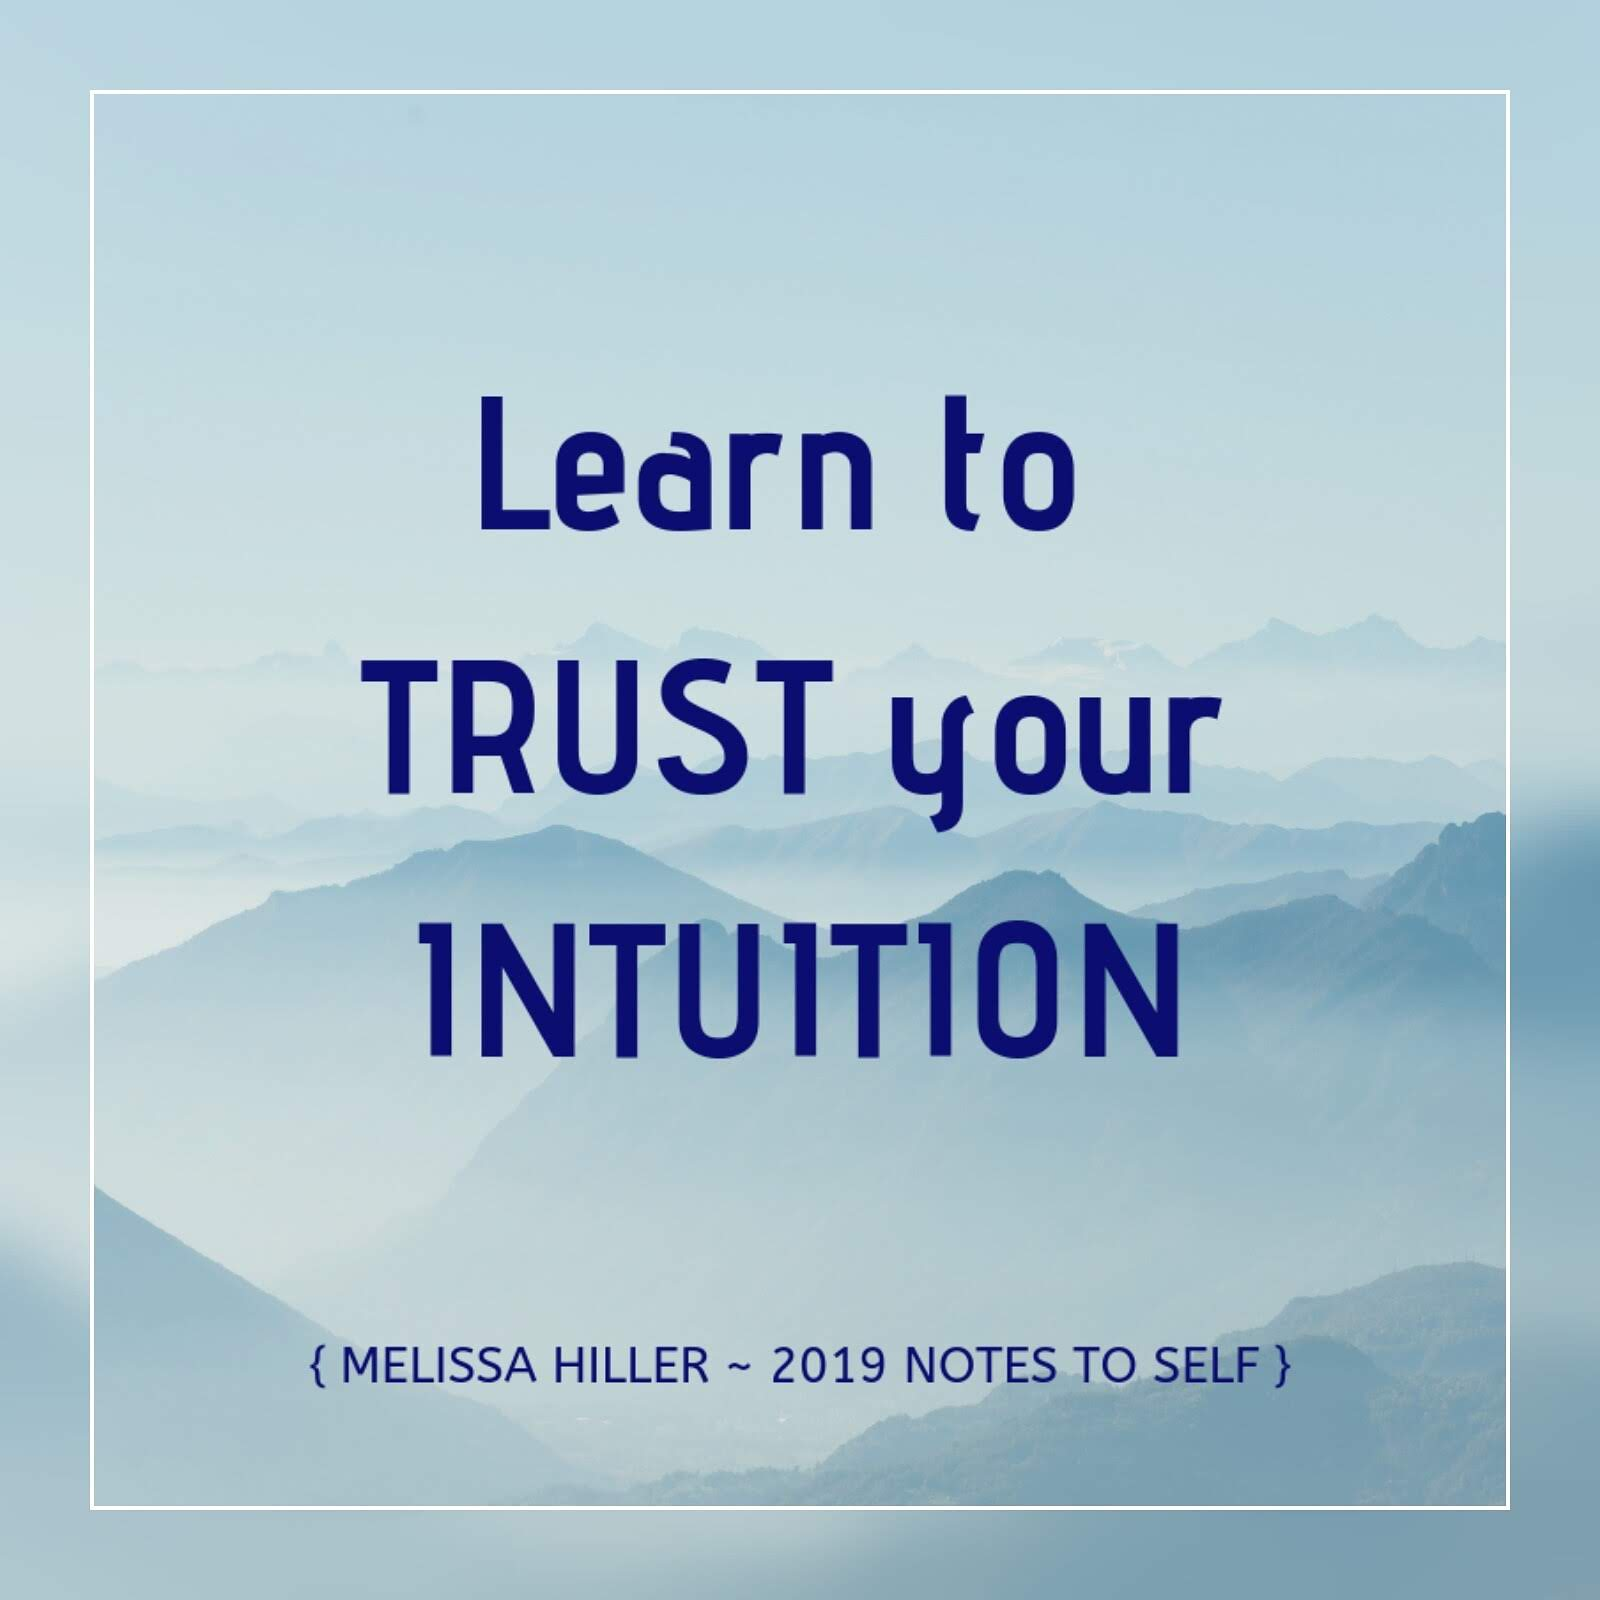 Learn to Trust your Intuition